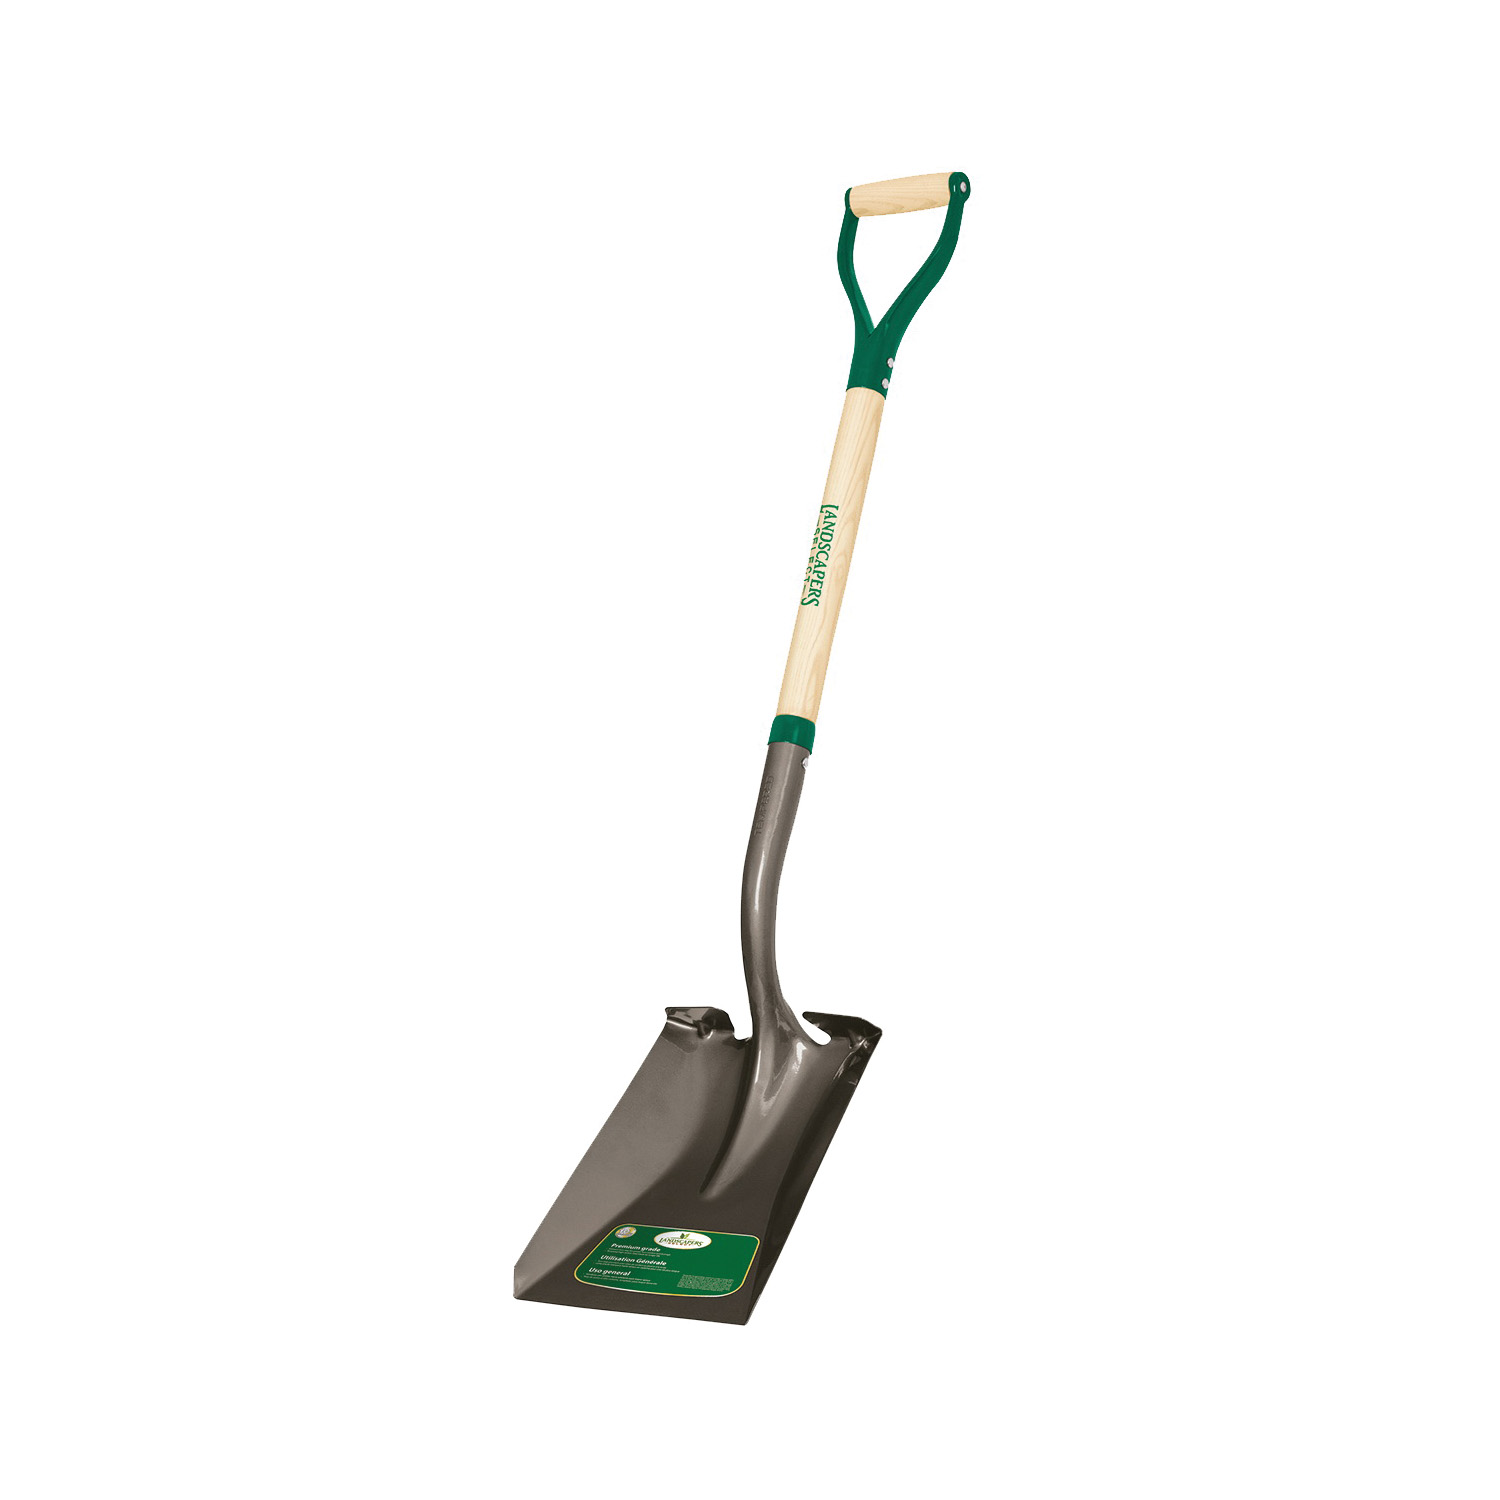 Picture of Landscapers Select 34594 Transfer Shovel, Steel Blade, Wood Handle, D-Shaped Handle, 30 in L Handle